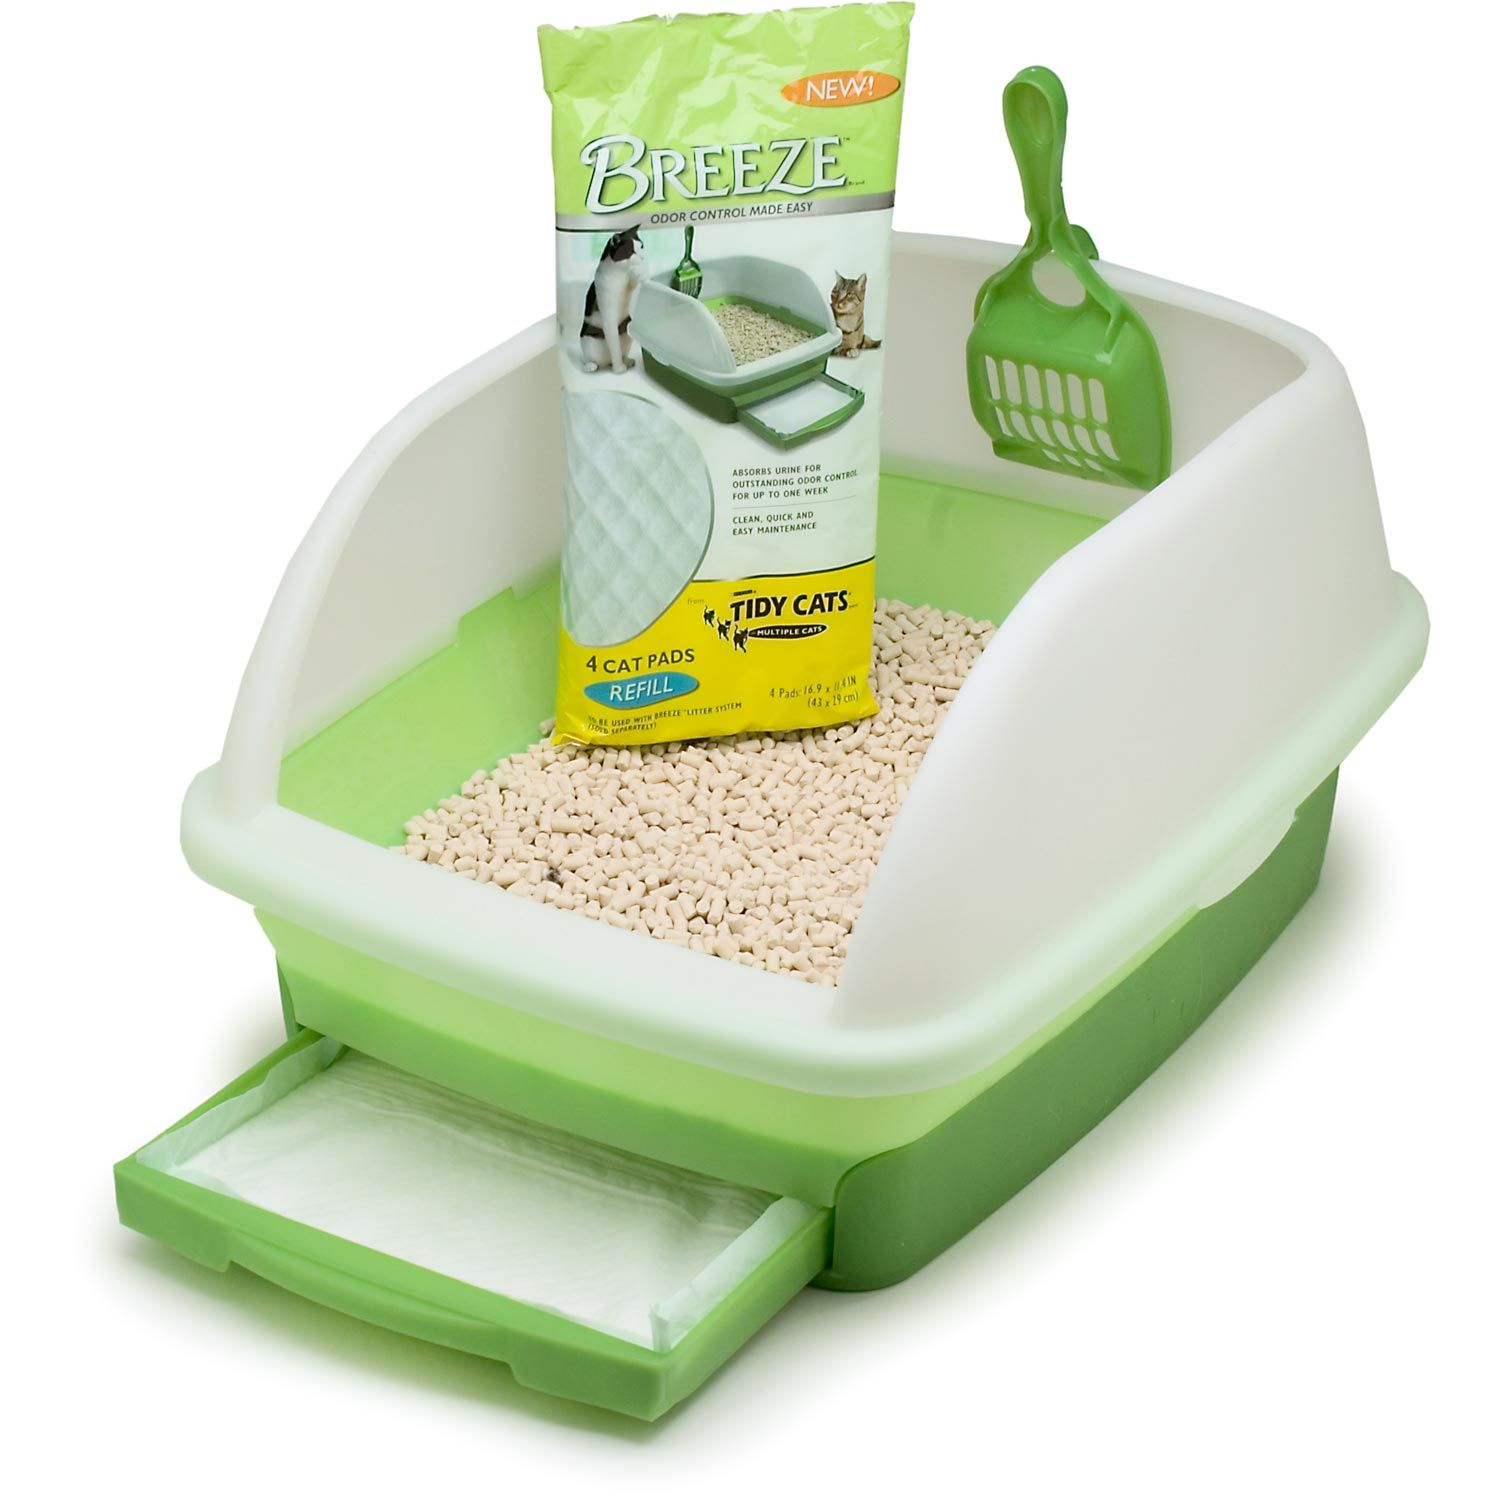 Tidy Cats Breeze Litter Box System Pets Best Cat